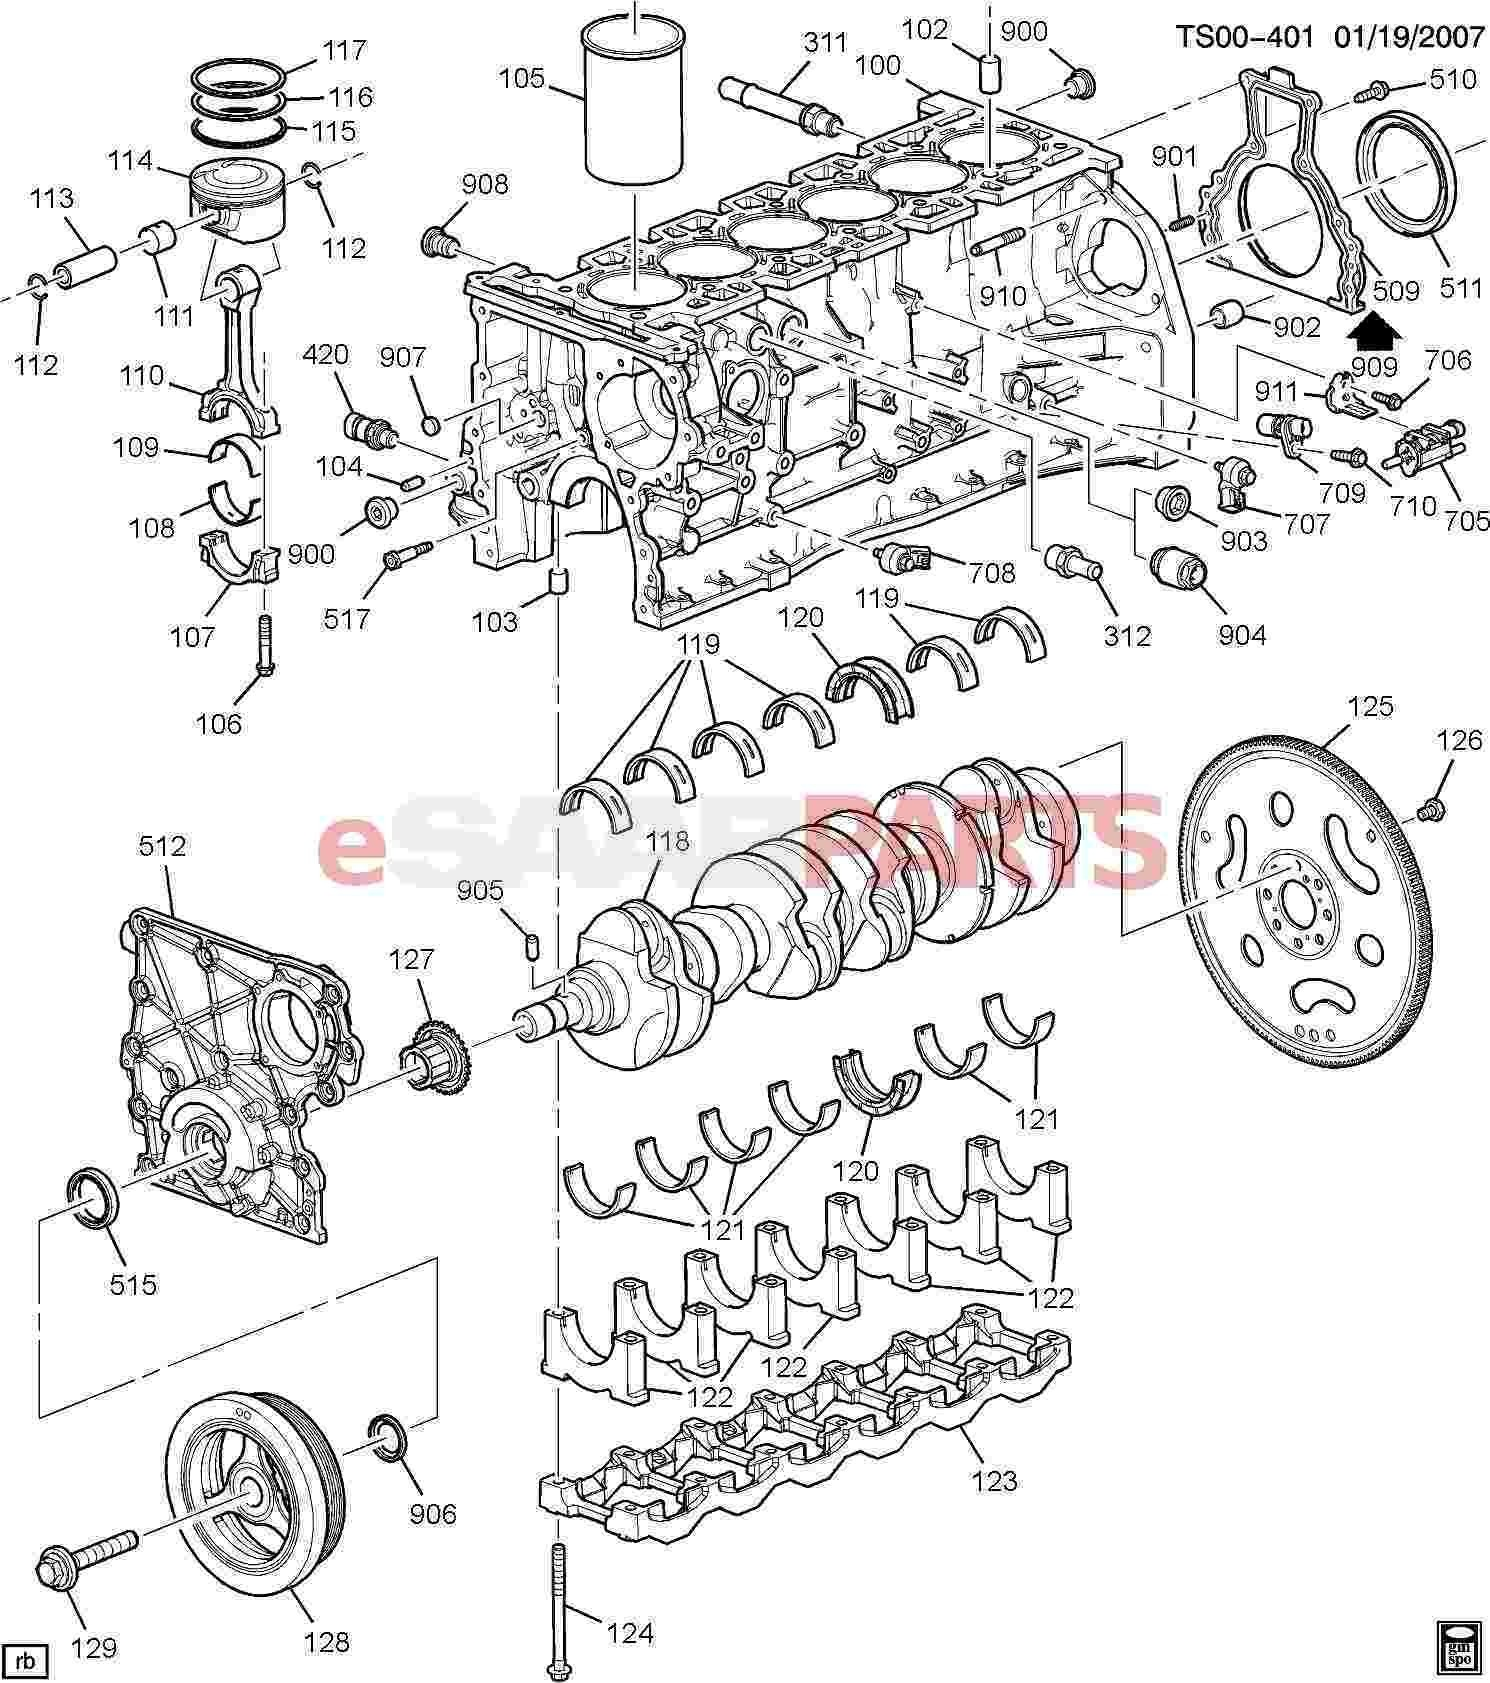 Lexus Es300 Engine Diagram Auto Engine Parts Diagram Of Lexus Es300 Engine Diagram